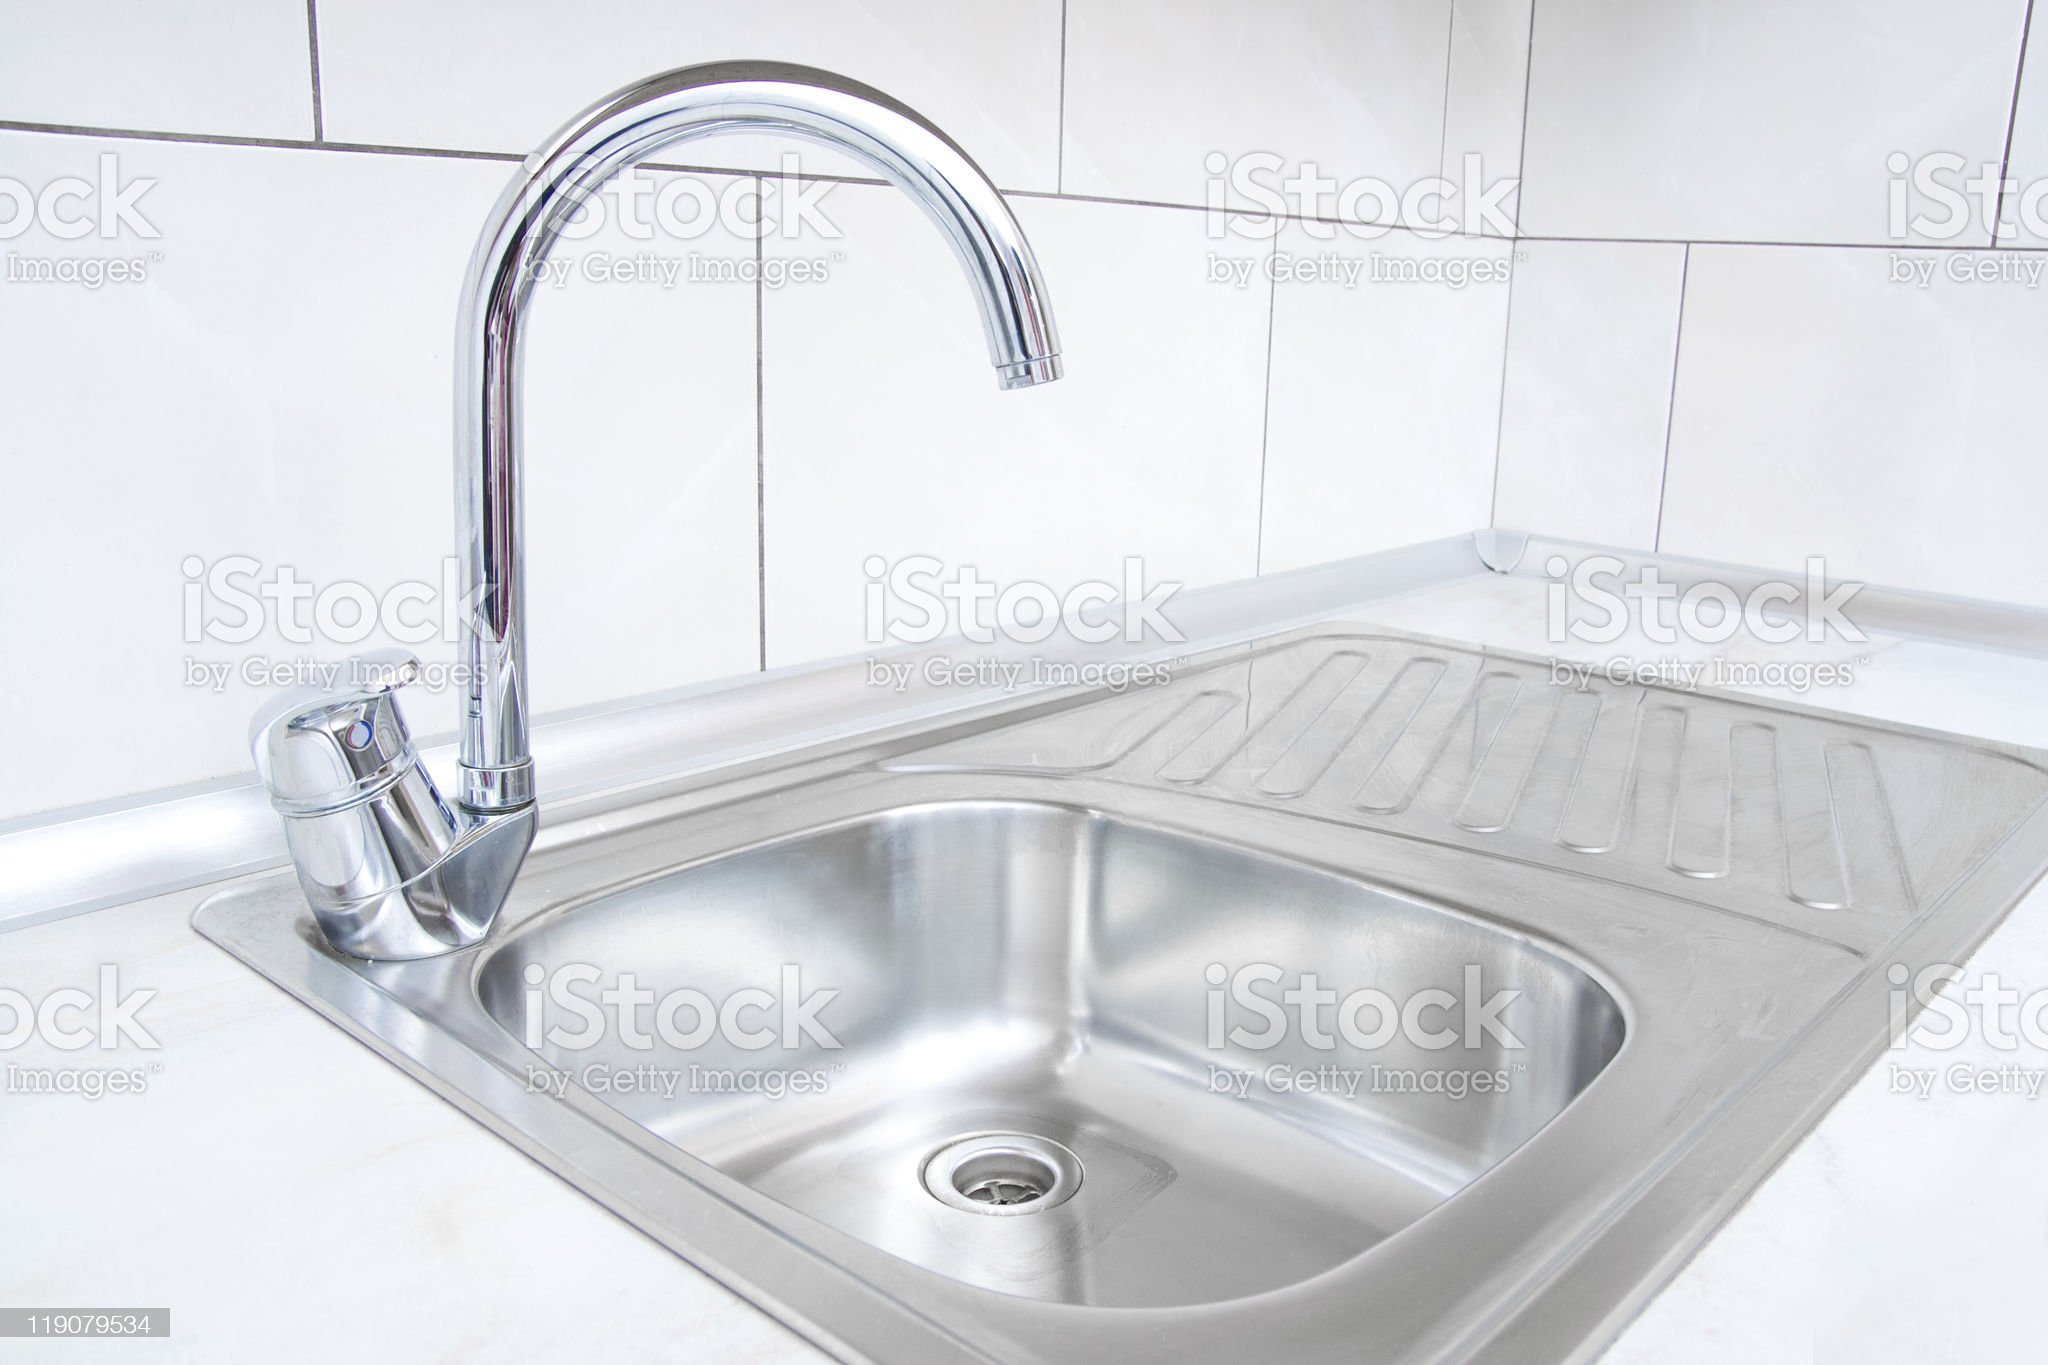 Stainless steel water basin with arched silver faucet royalty-free stock photo